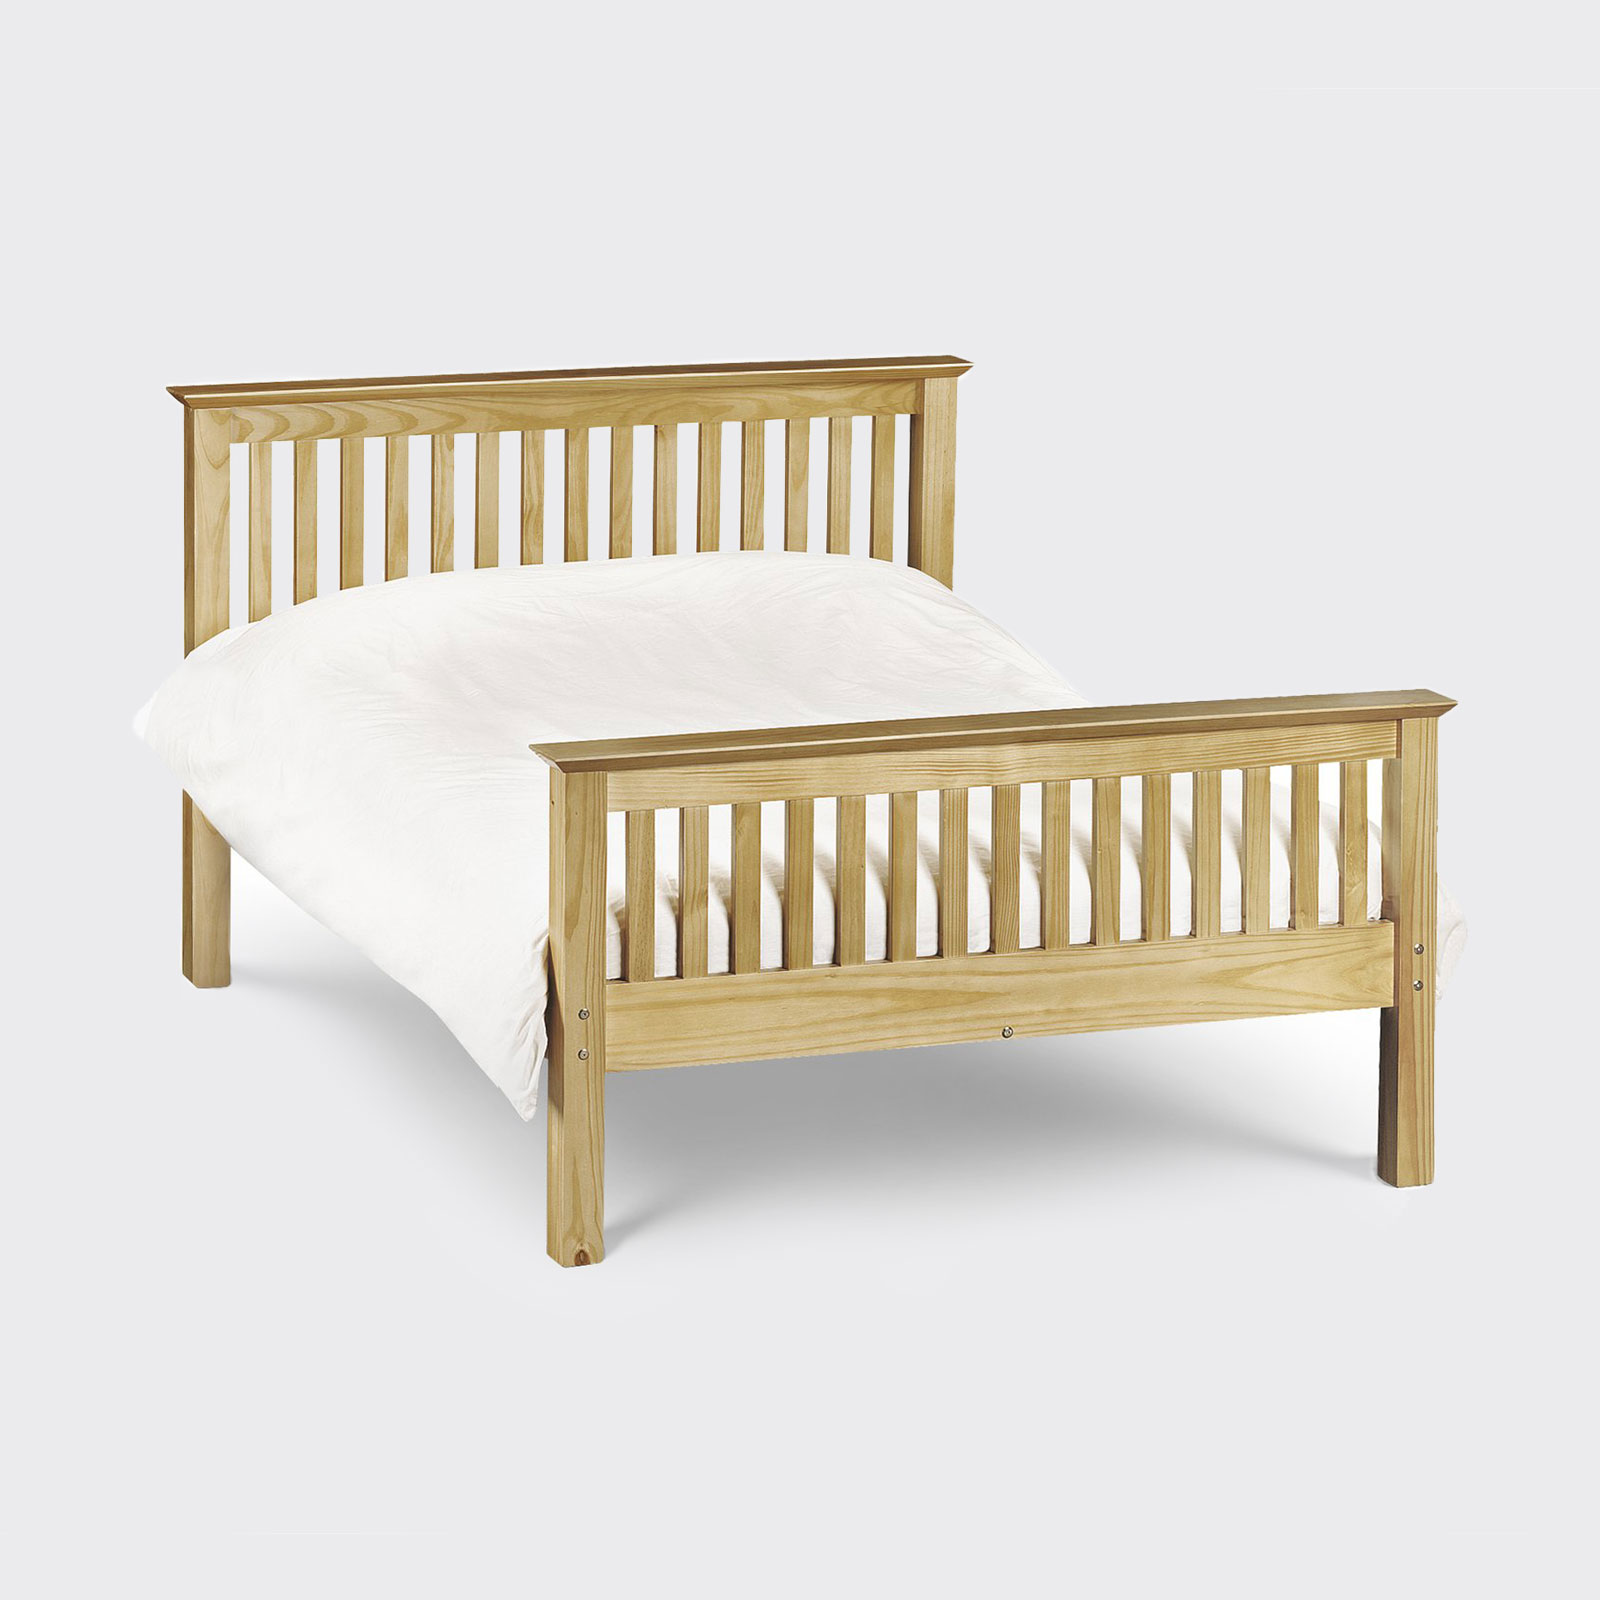 Barcelona bed frame with Rio mattress